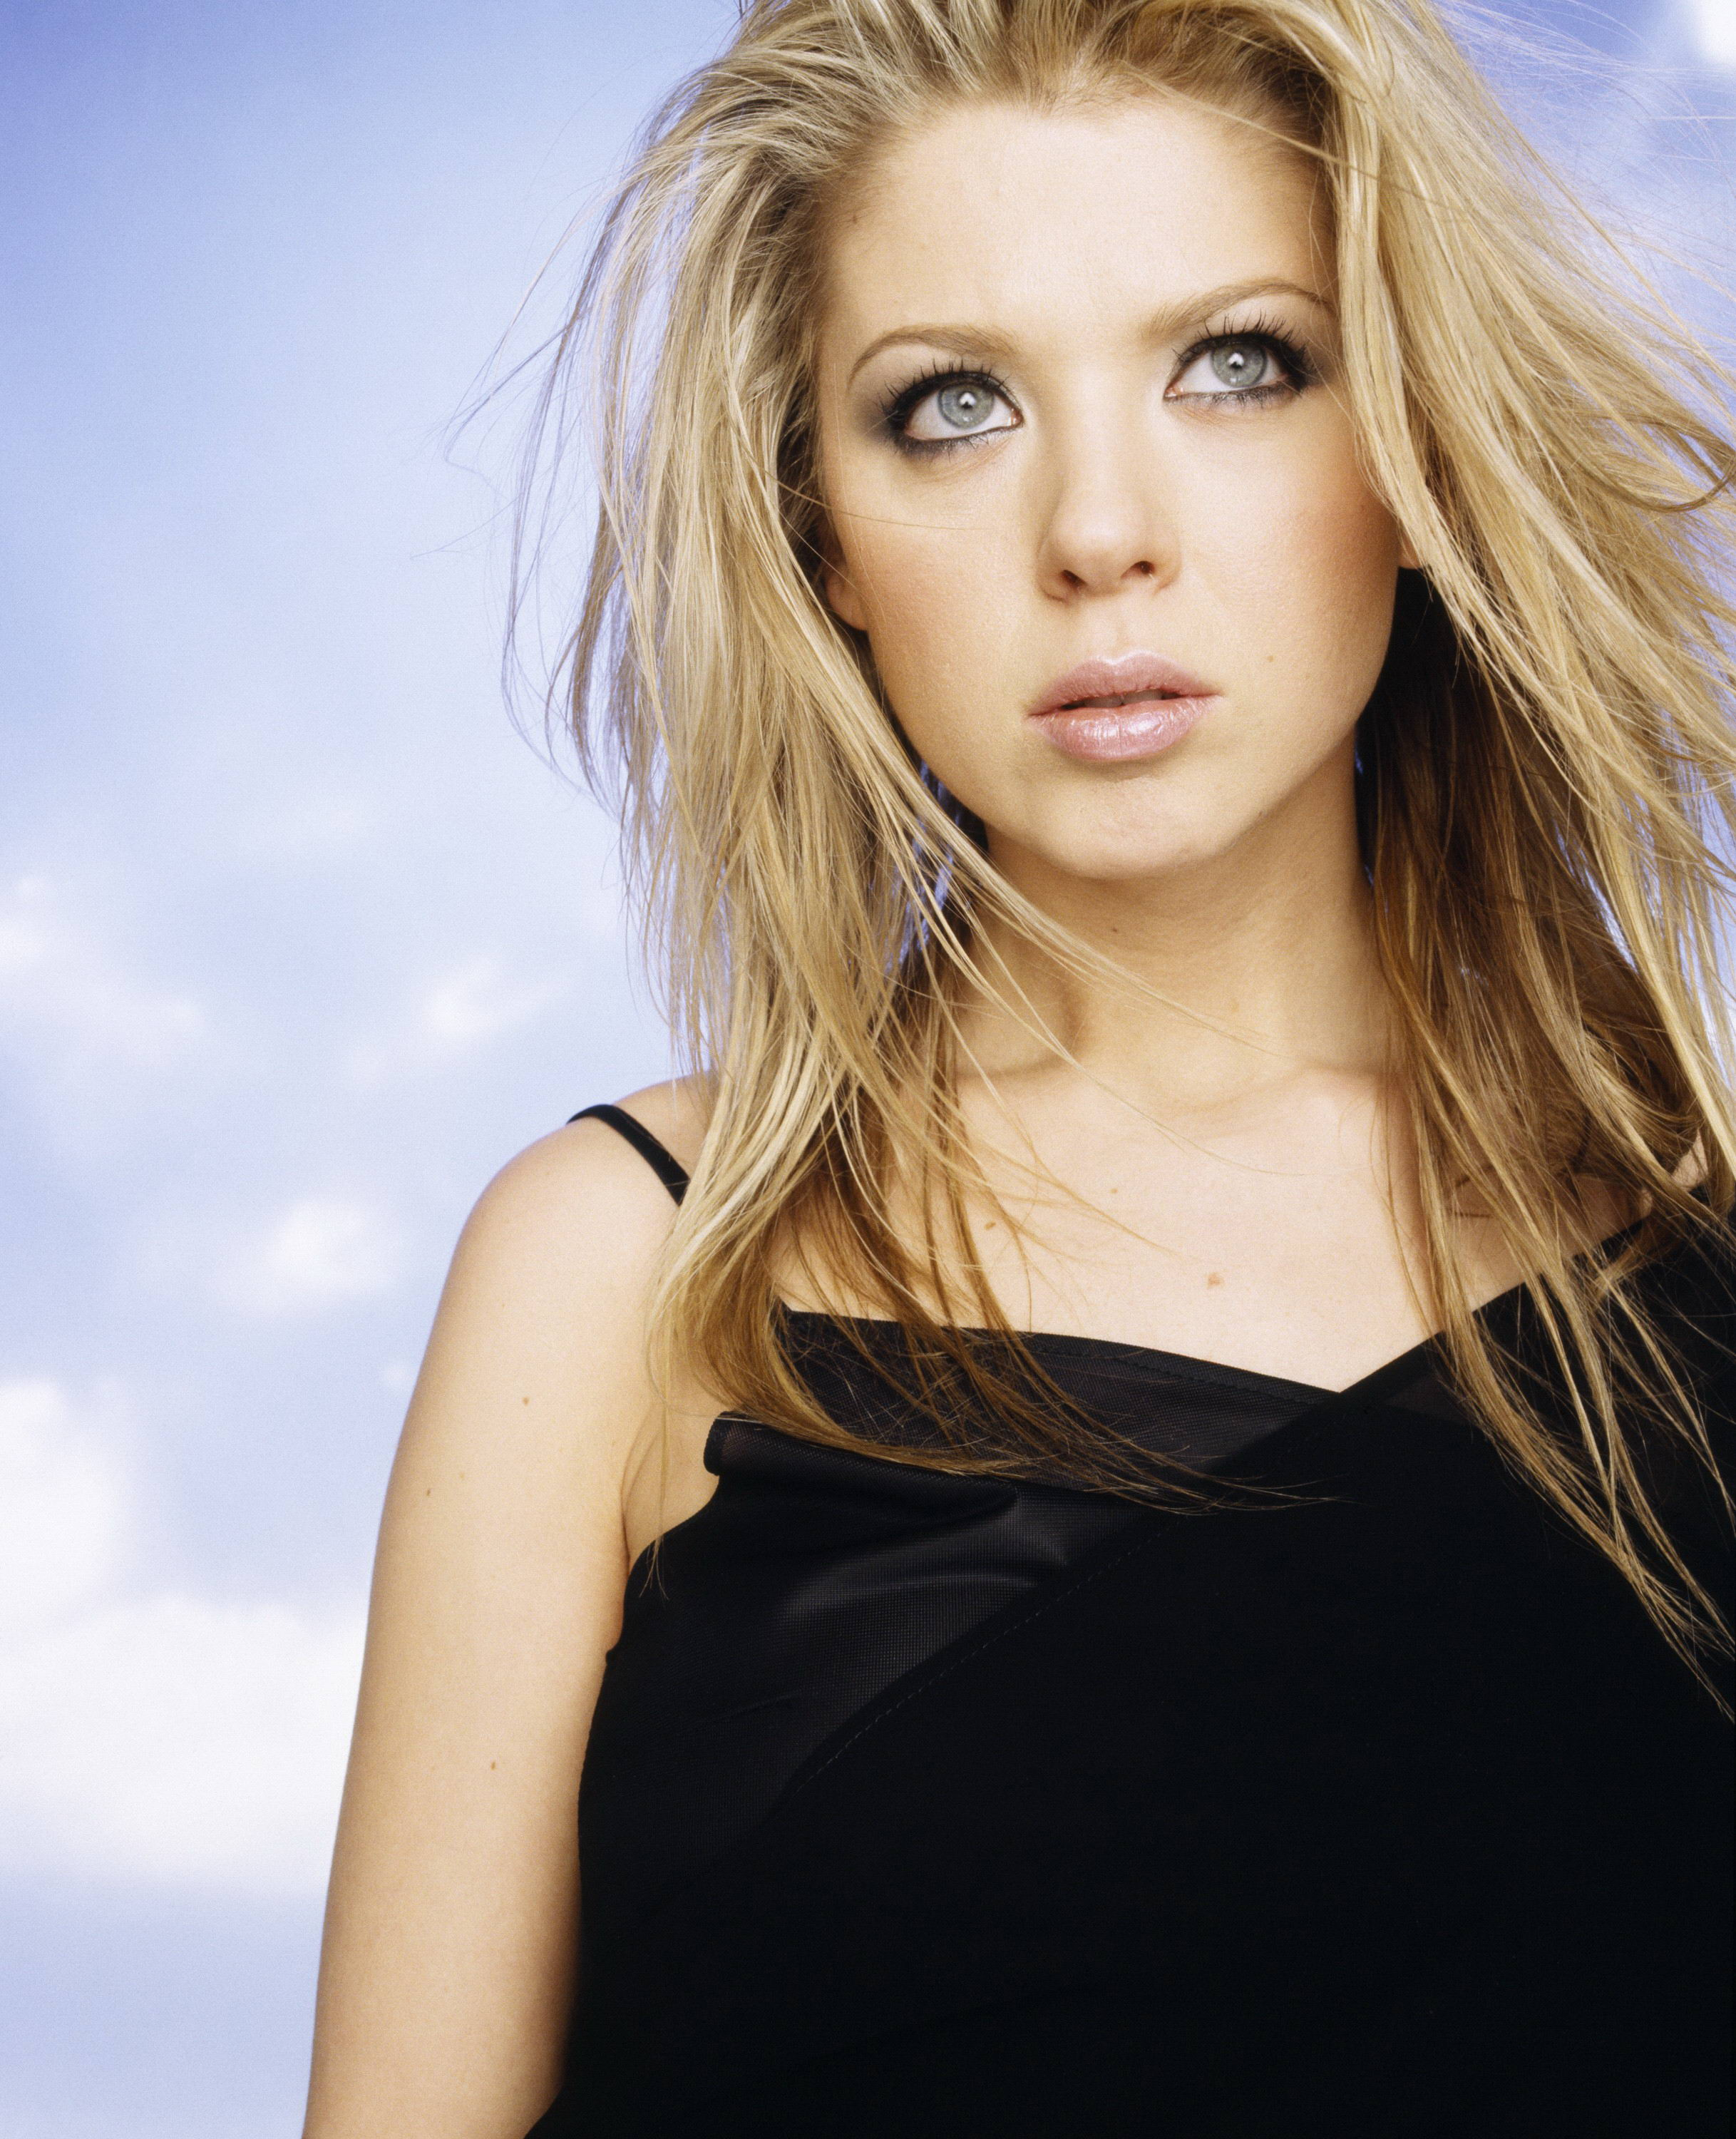 Tara Donna Reid born November 8 1975 is an American actress She is known for playing Vicky in the films American Pie 1999 American Pie 2 2001 and American